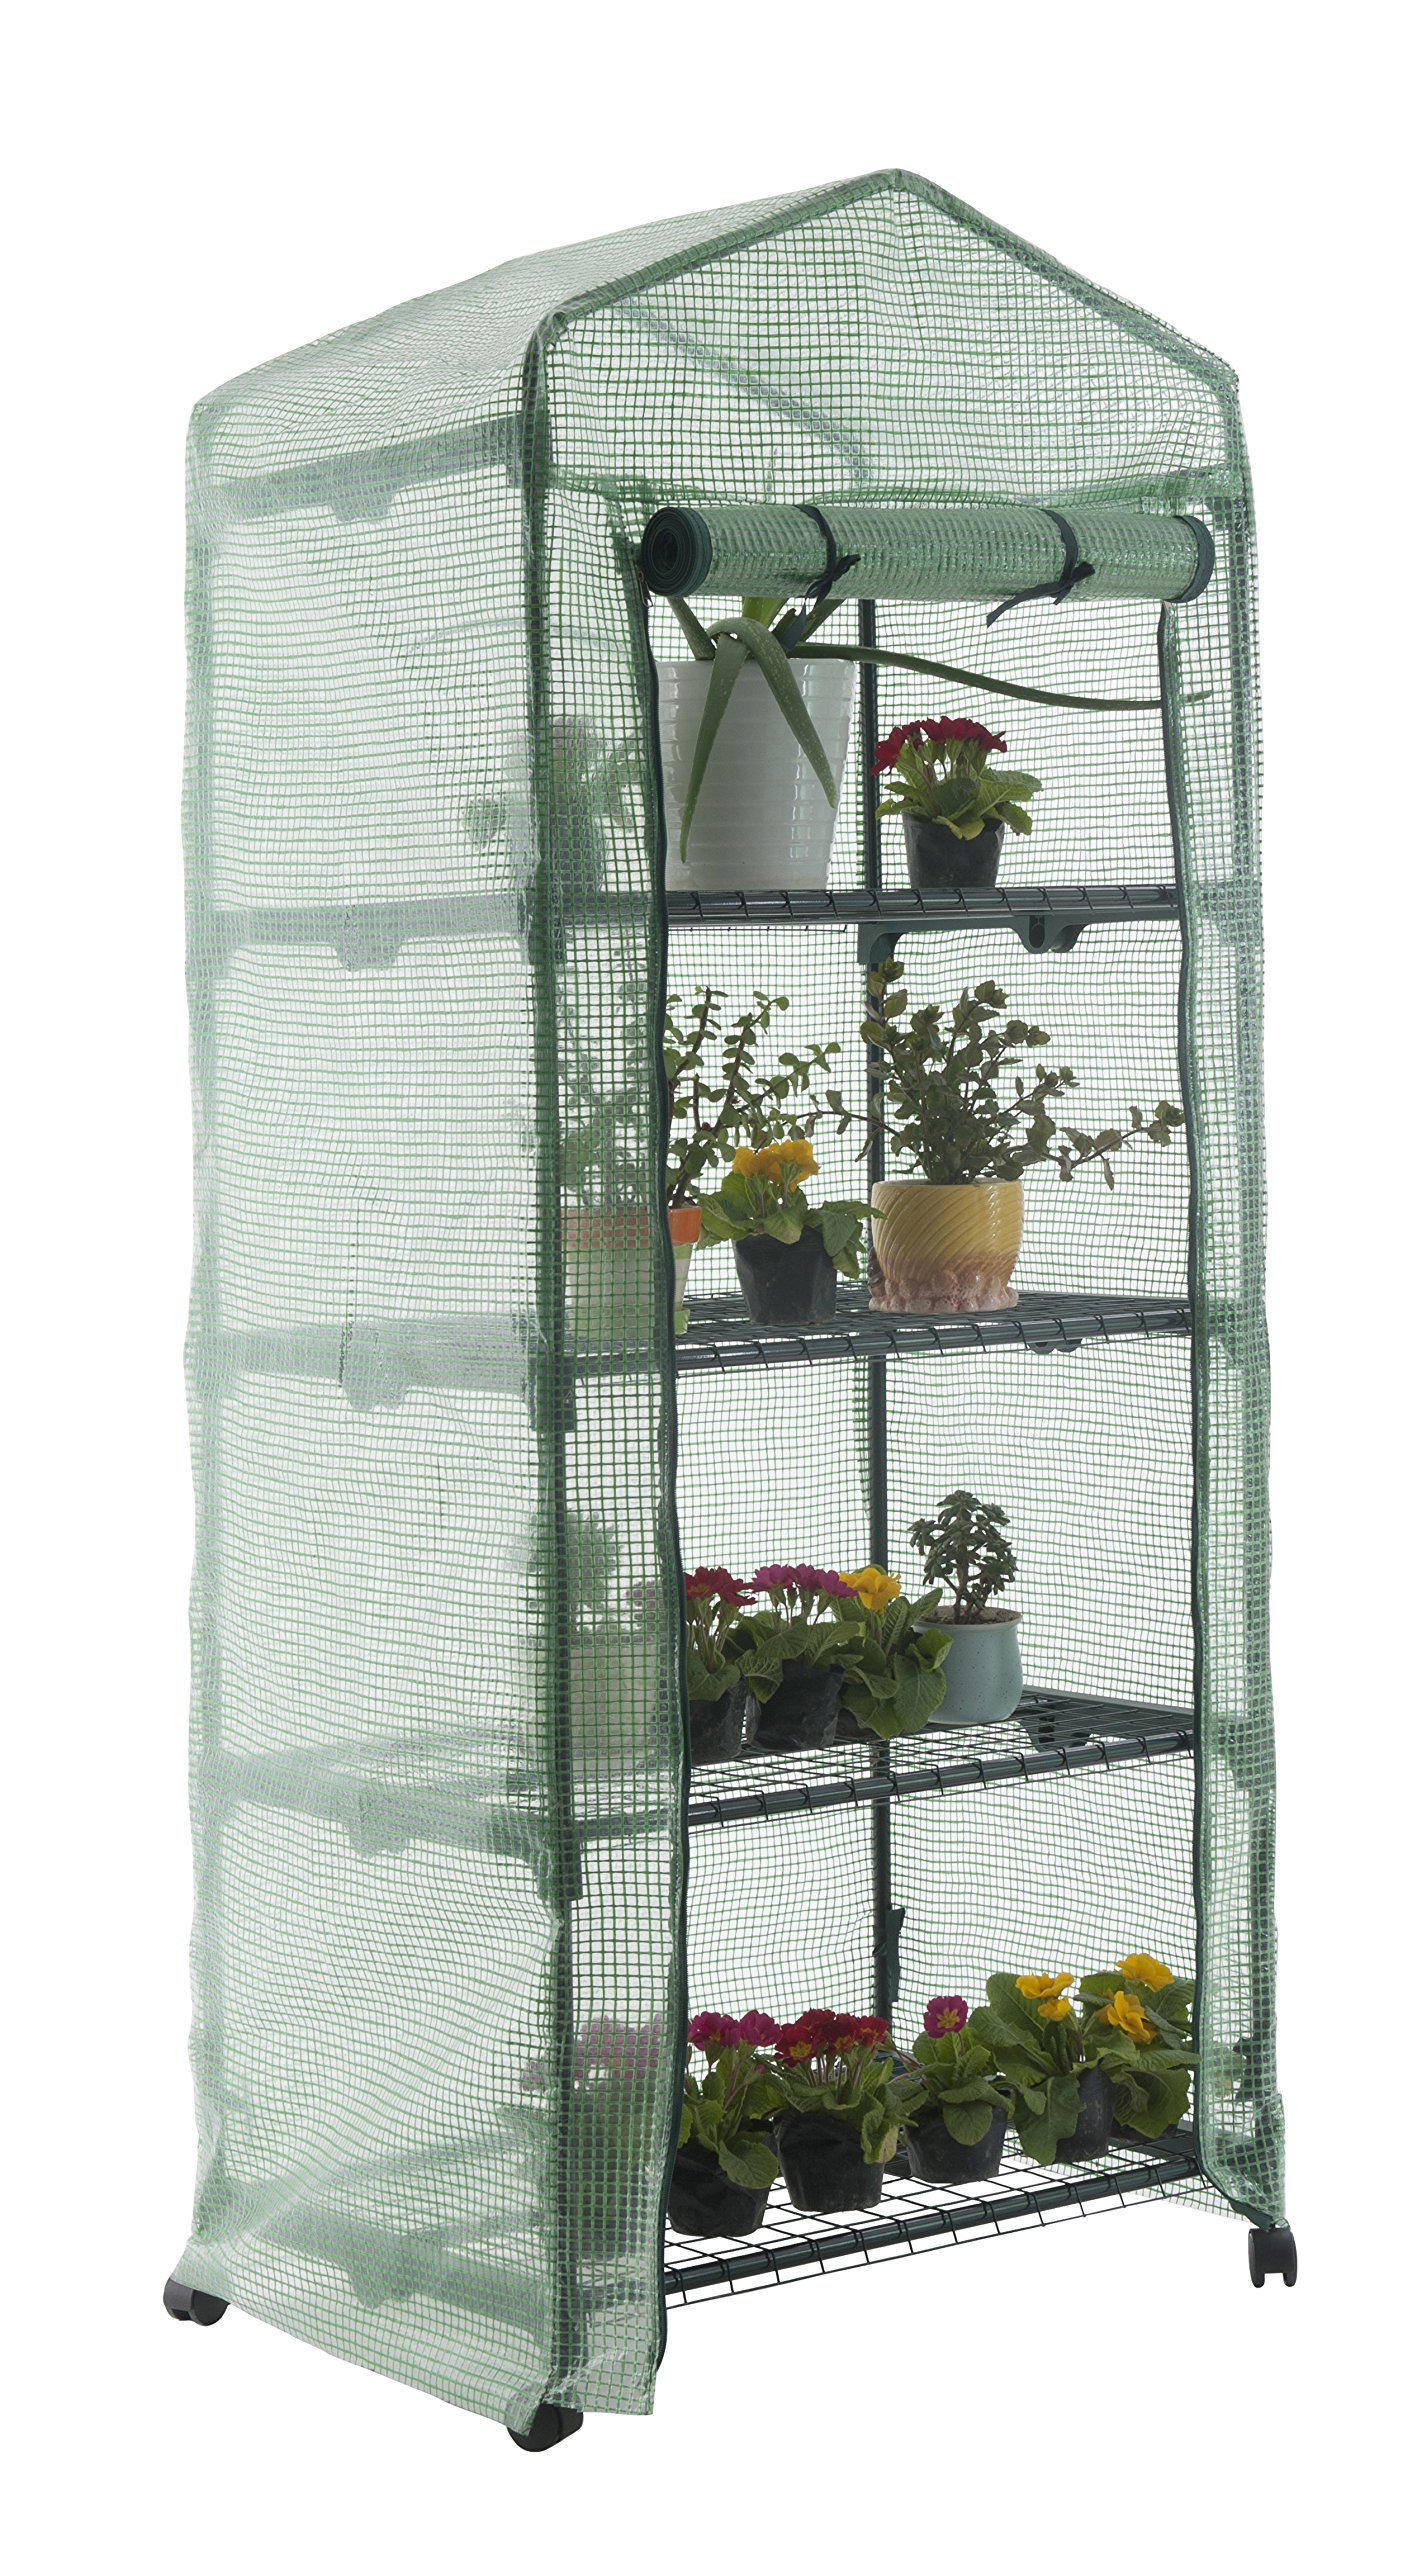 GOJOOASIS 4 Tier Mini Portable Garden Greenhouse on Wheels Plants Shed Hot House for Indoor and Outdoor by GOJOOASIS (Image #5)